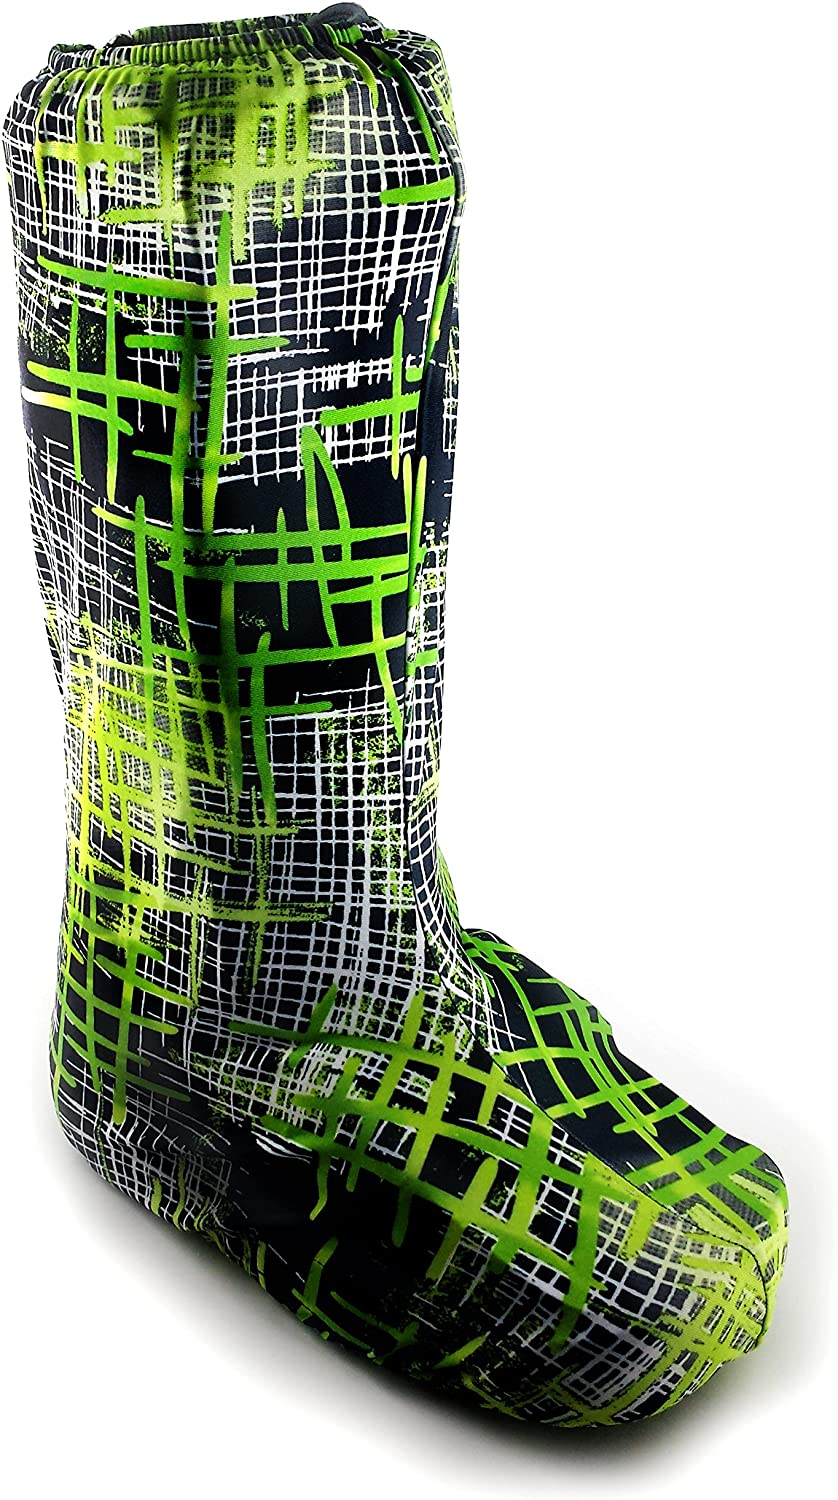 My Recovers Walking Boot Cover for Fracture Boot, Fashion Cover in Hatchet, Tall Boot, Made in USA, Orthopedic Products Accessories (Large)